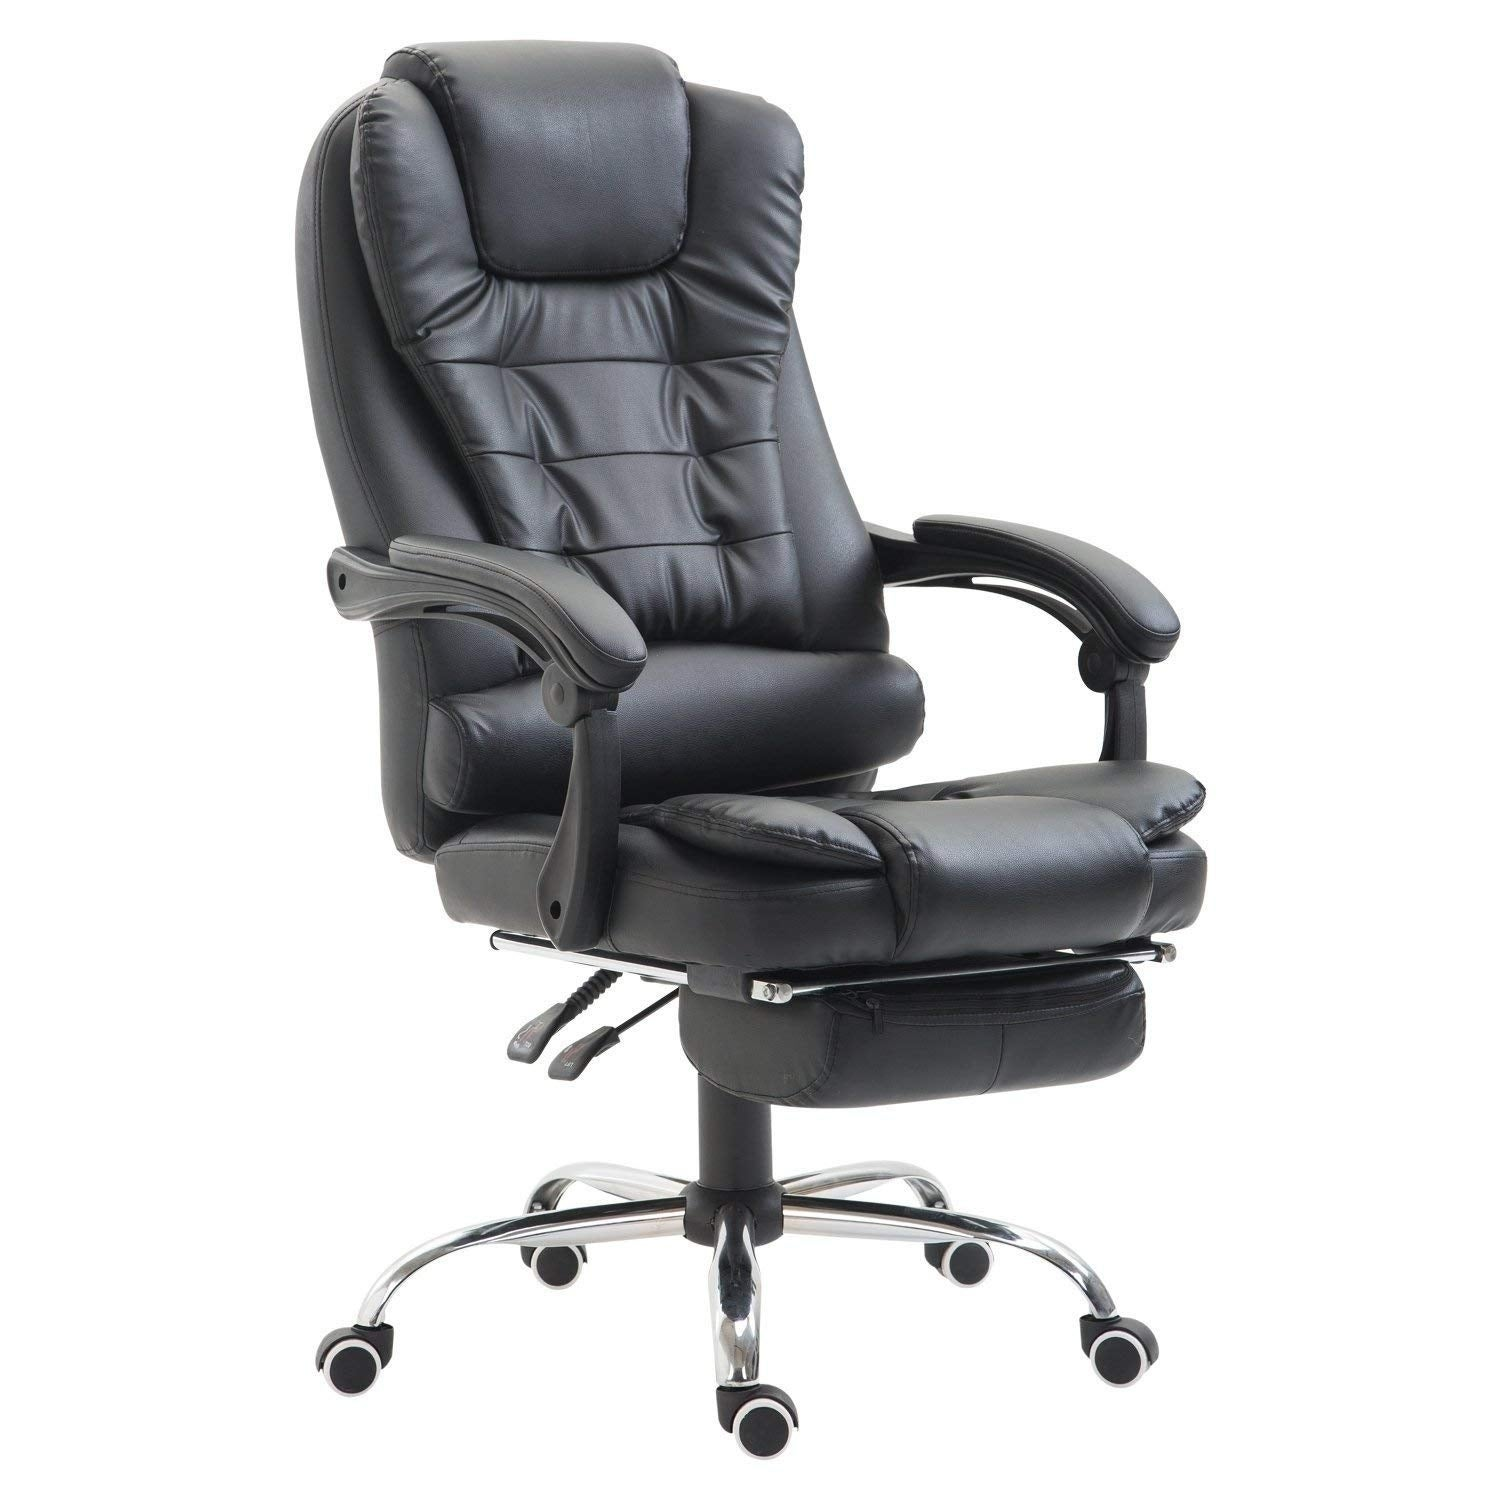 HomCom High Back Reclining PU Leather Executive Home Office Chair With Retractable Footrest - Black (High Back)